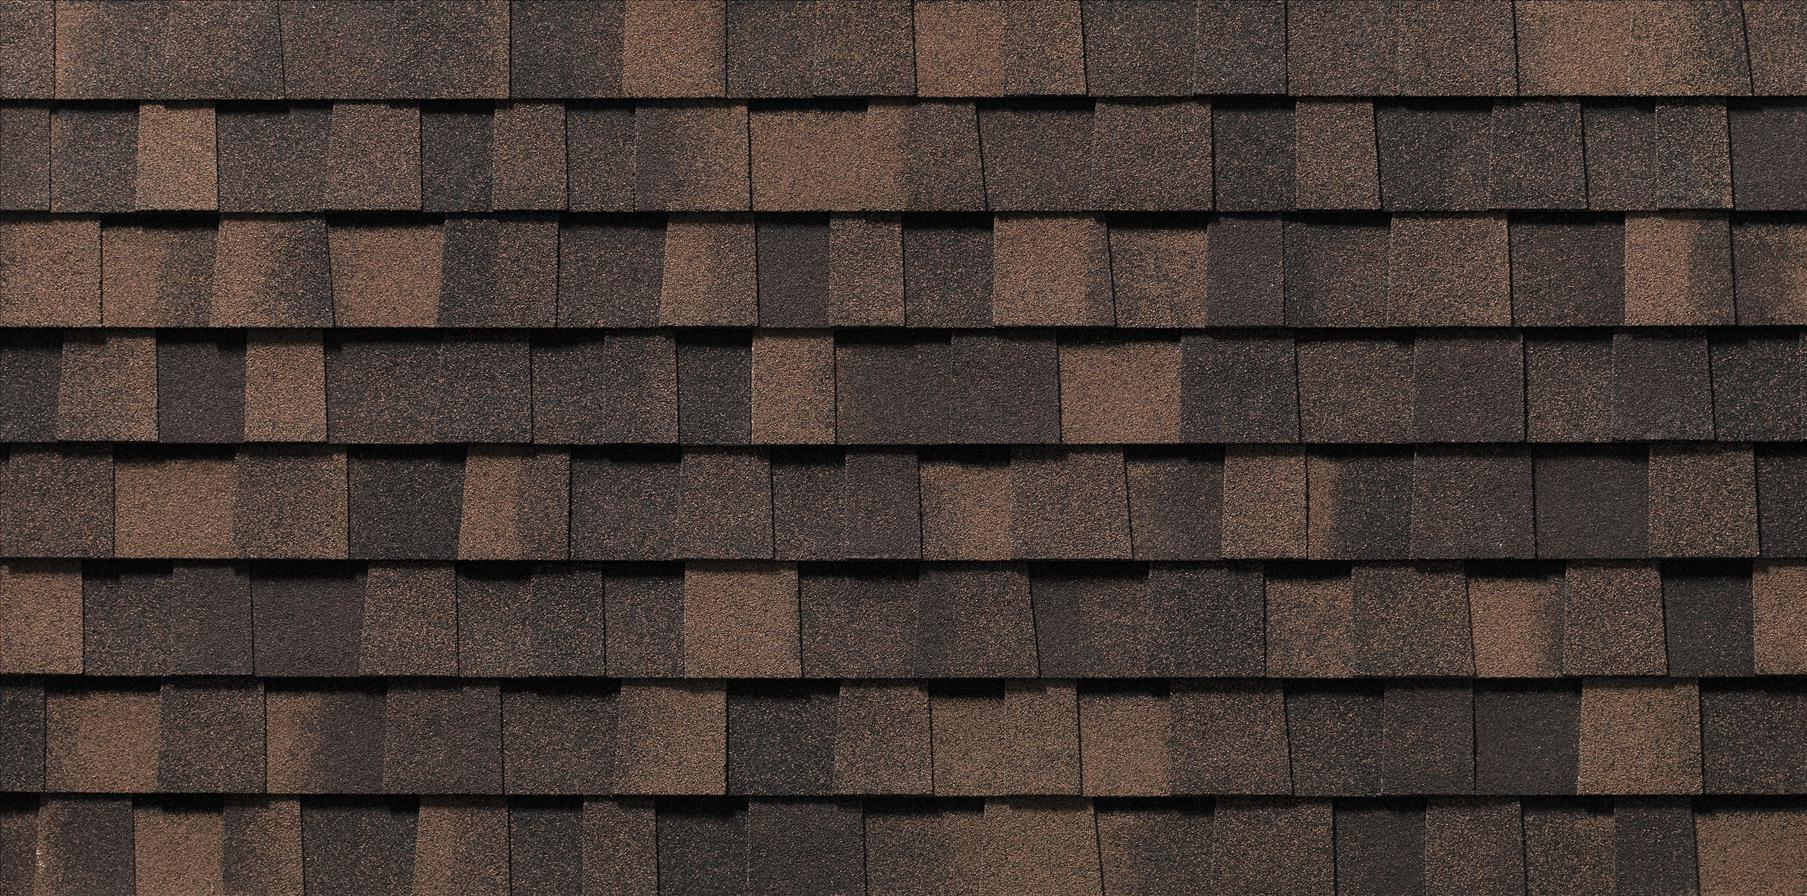 asphalt_shingle_077.jpg